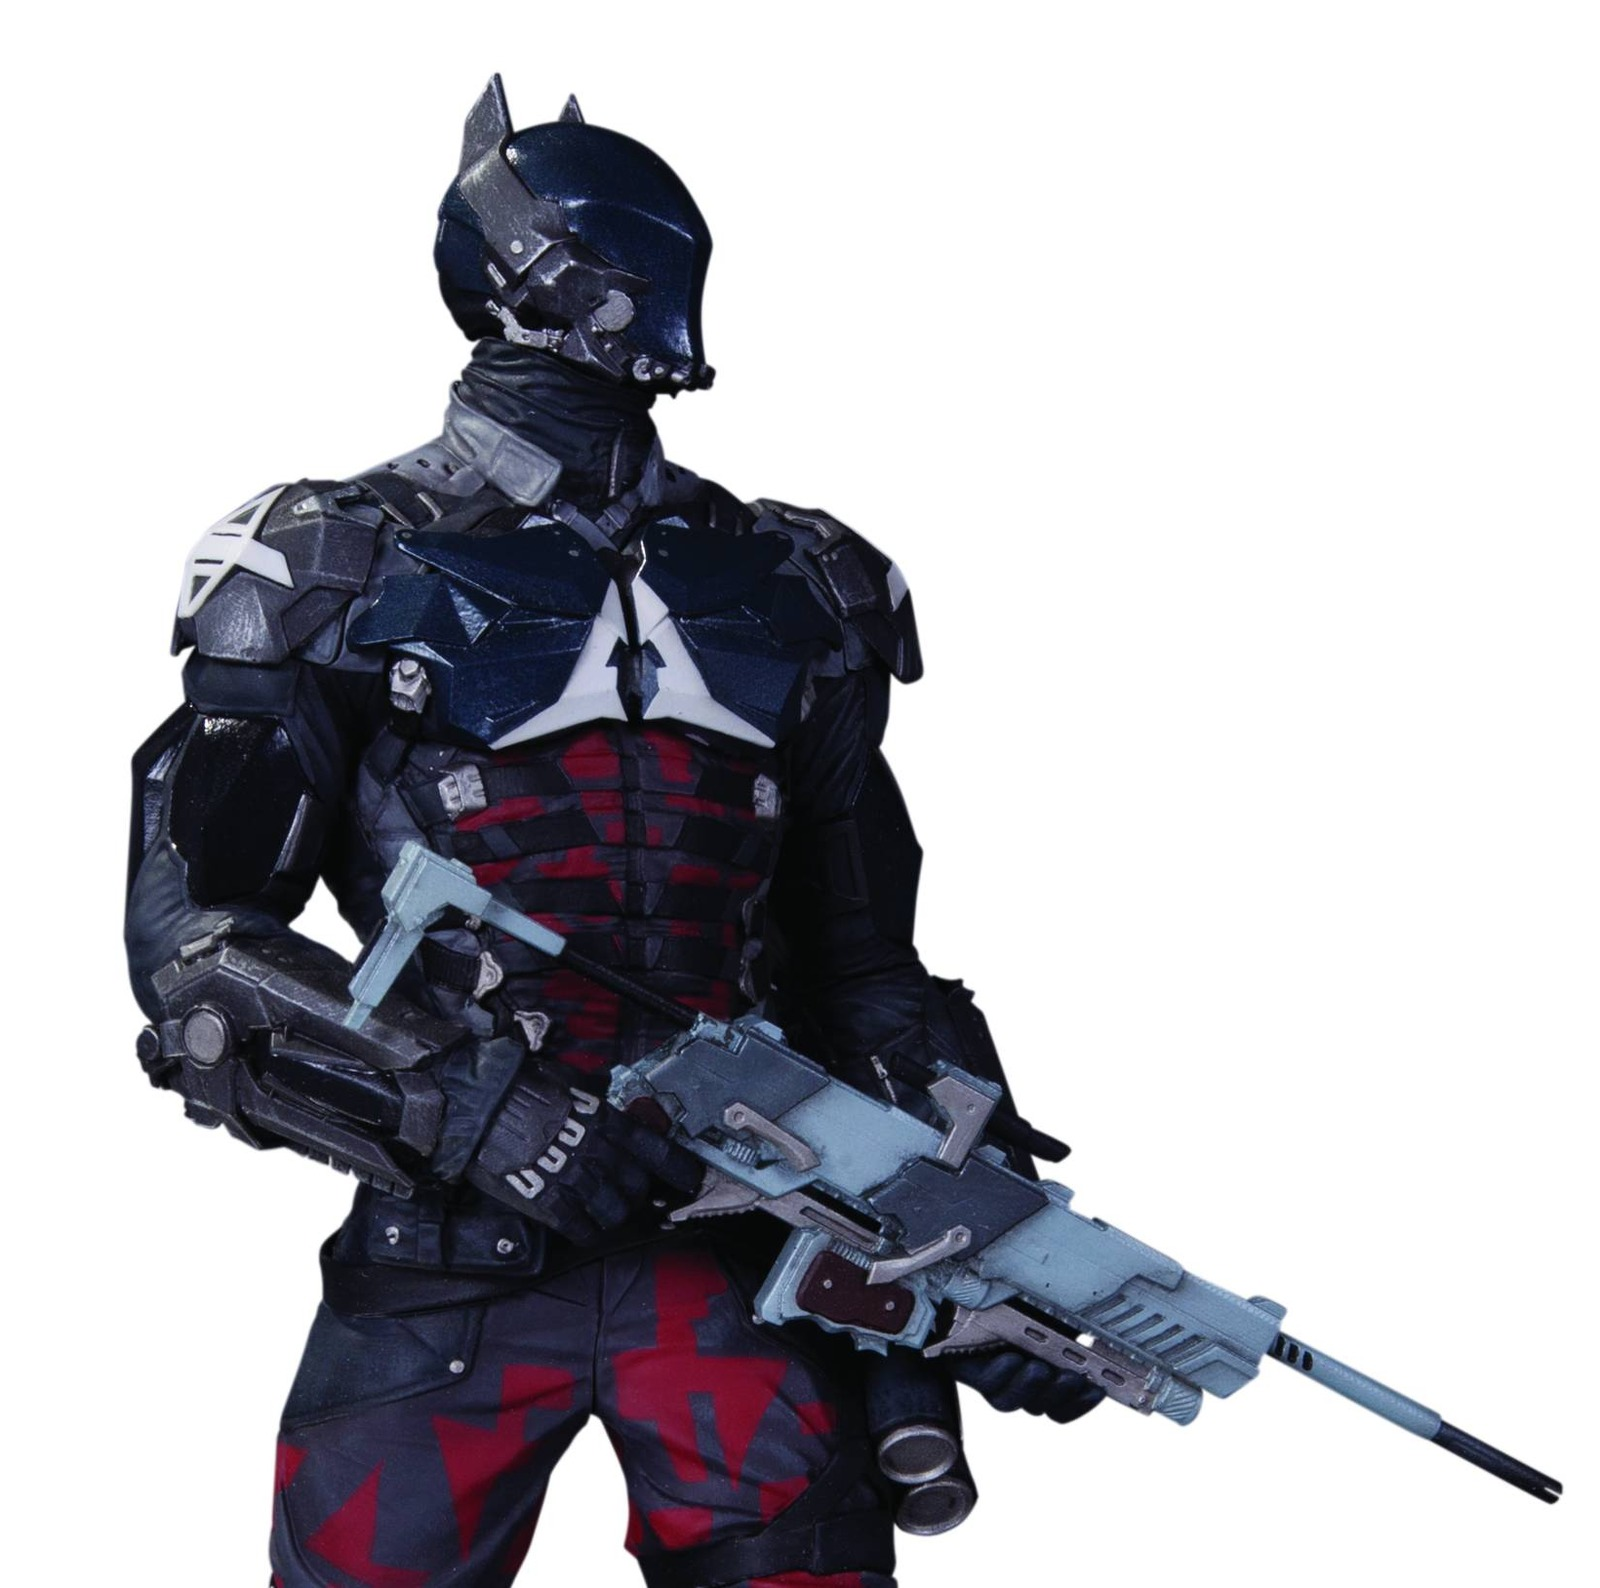 Batman Arkham Knight Statue image